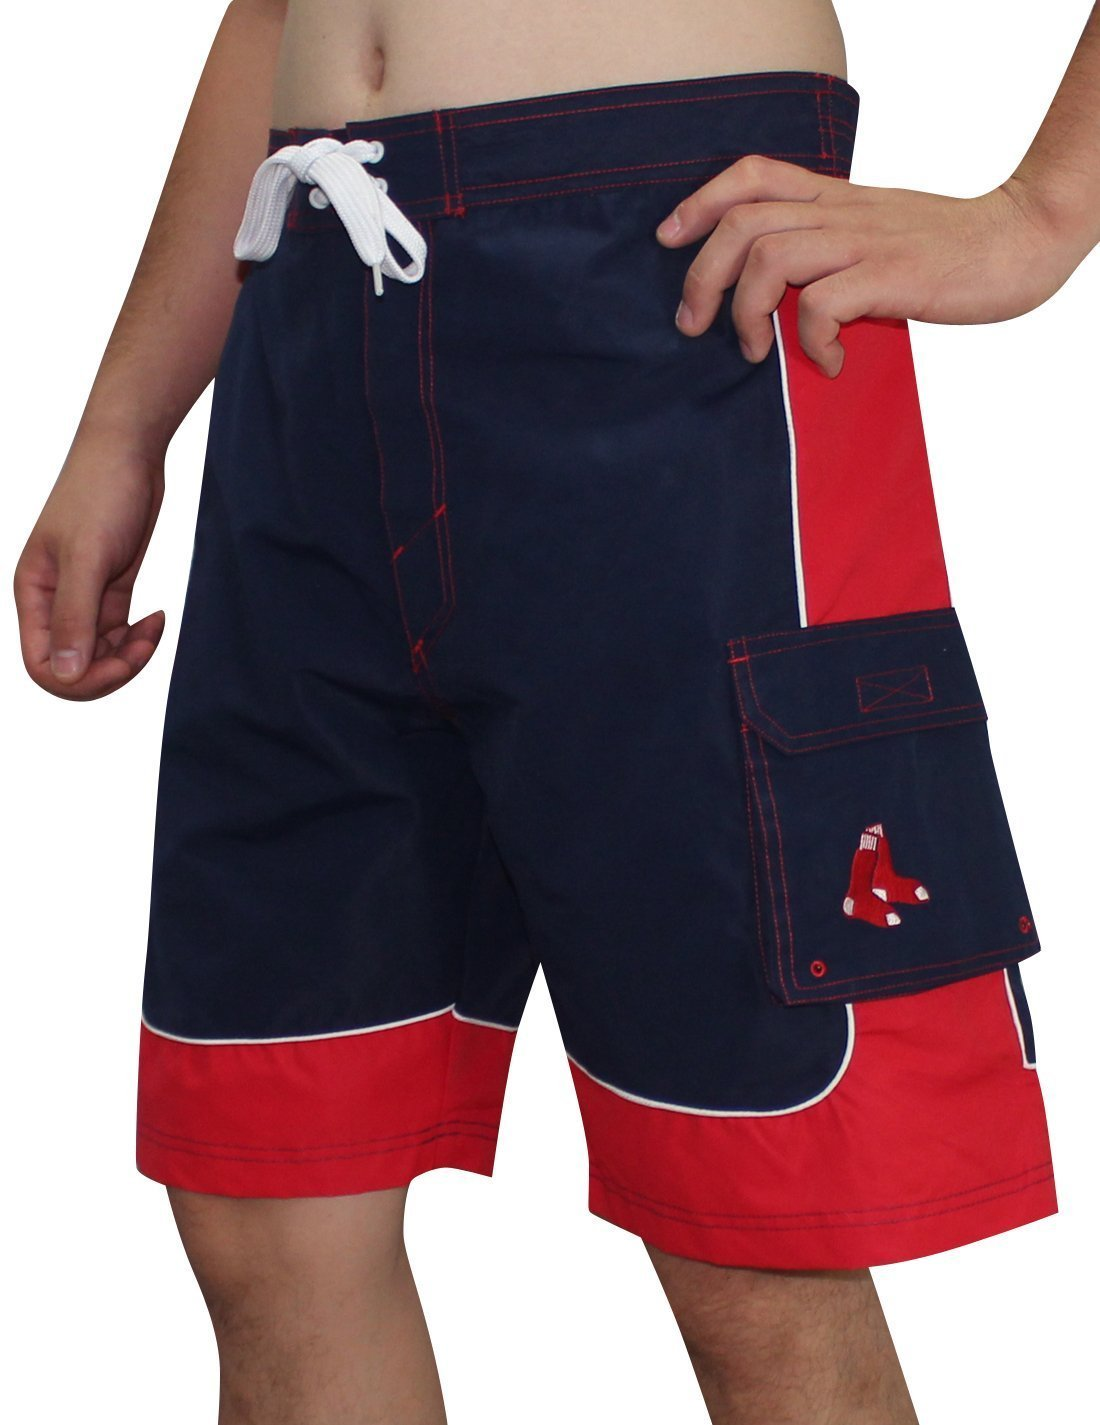 e240bfc830a9 Get Quotations · Mens MLB 2-Tone Boston Red Sox Athletic Sports Shorts with  Swim Lining - Large